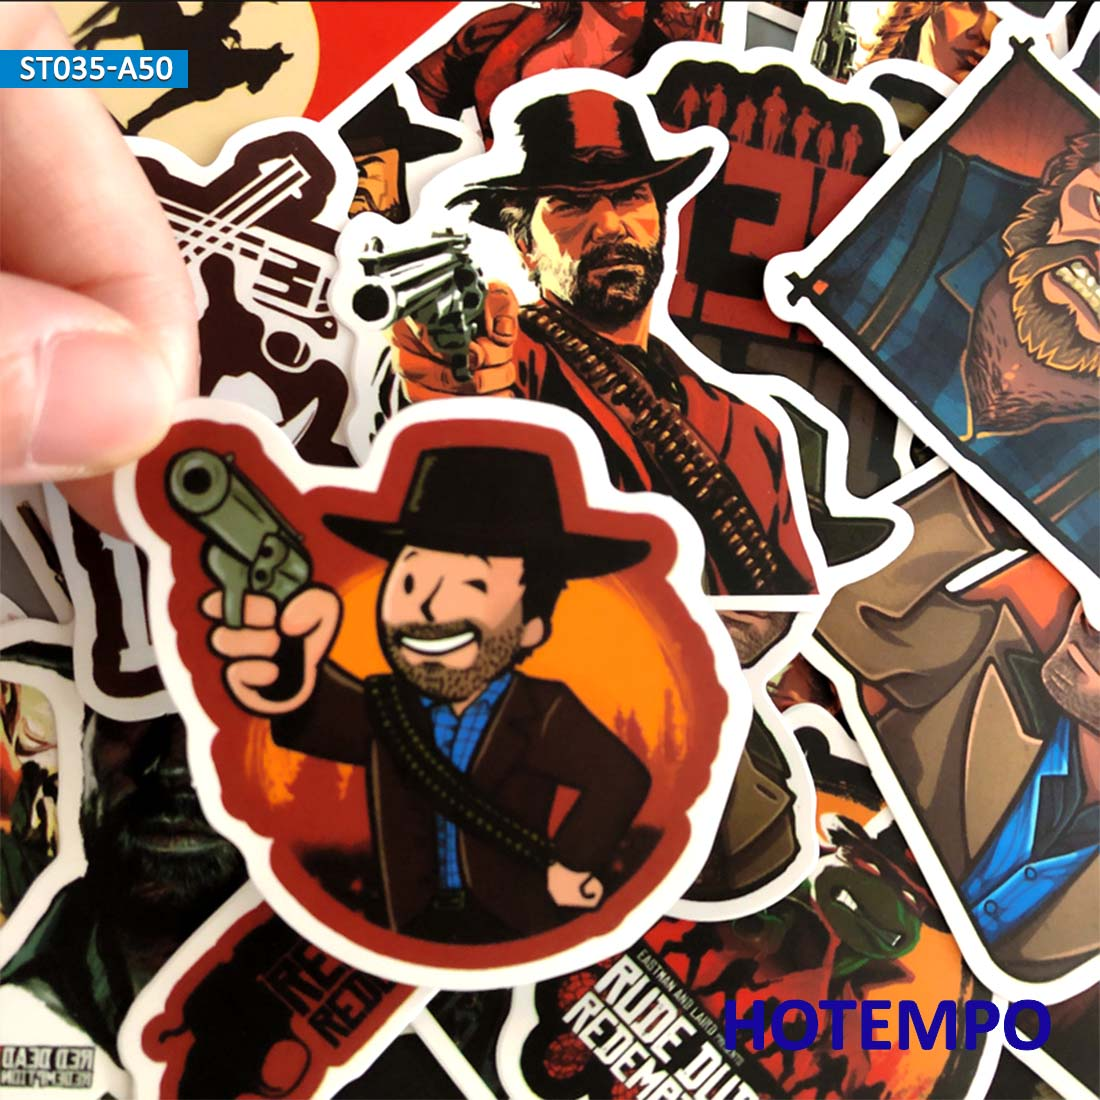 50pcs Game Stickers Red Dead Western Cowboy Style Redemption For Mobile Phone Laptop Luggage Case Skateboard Waterproof Stickers